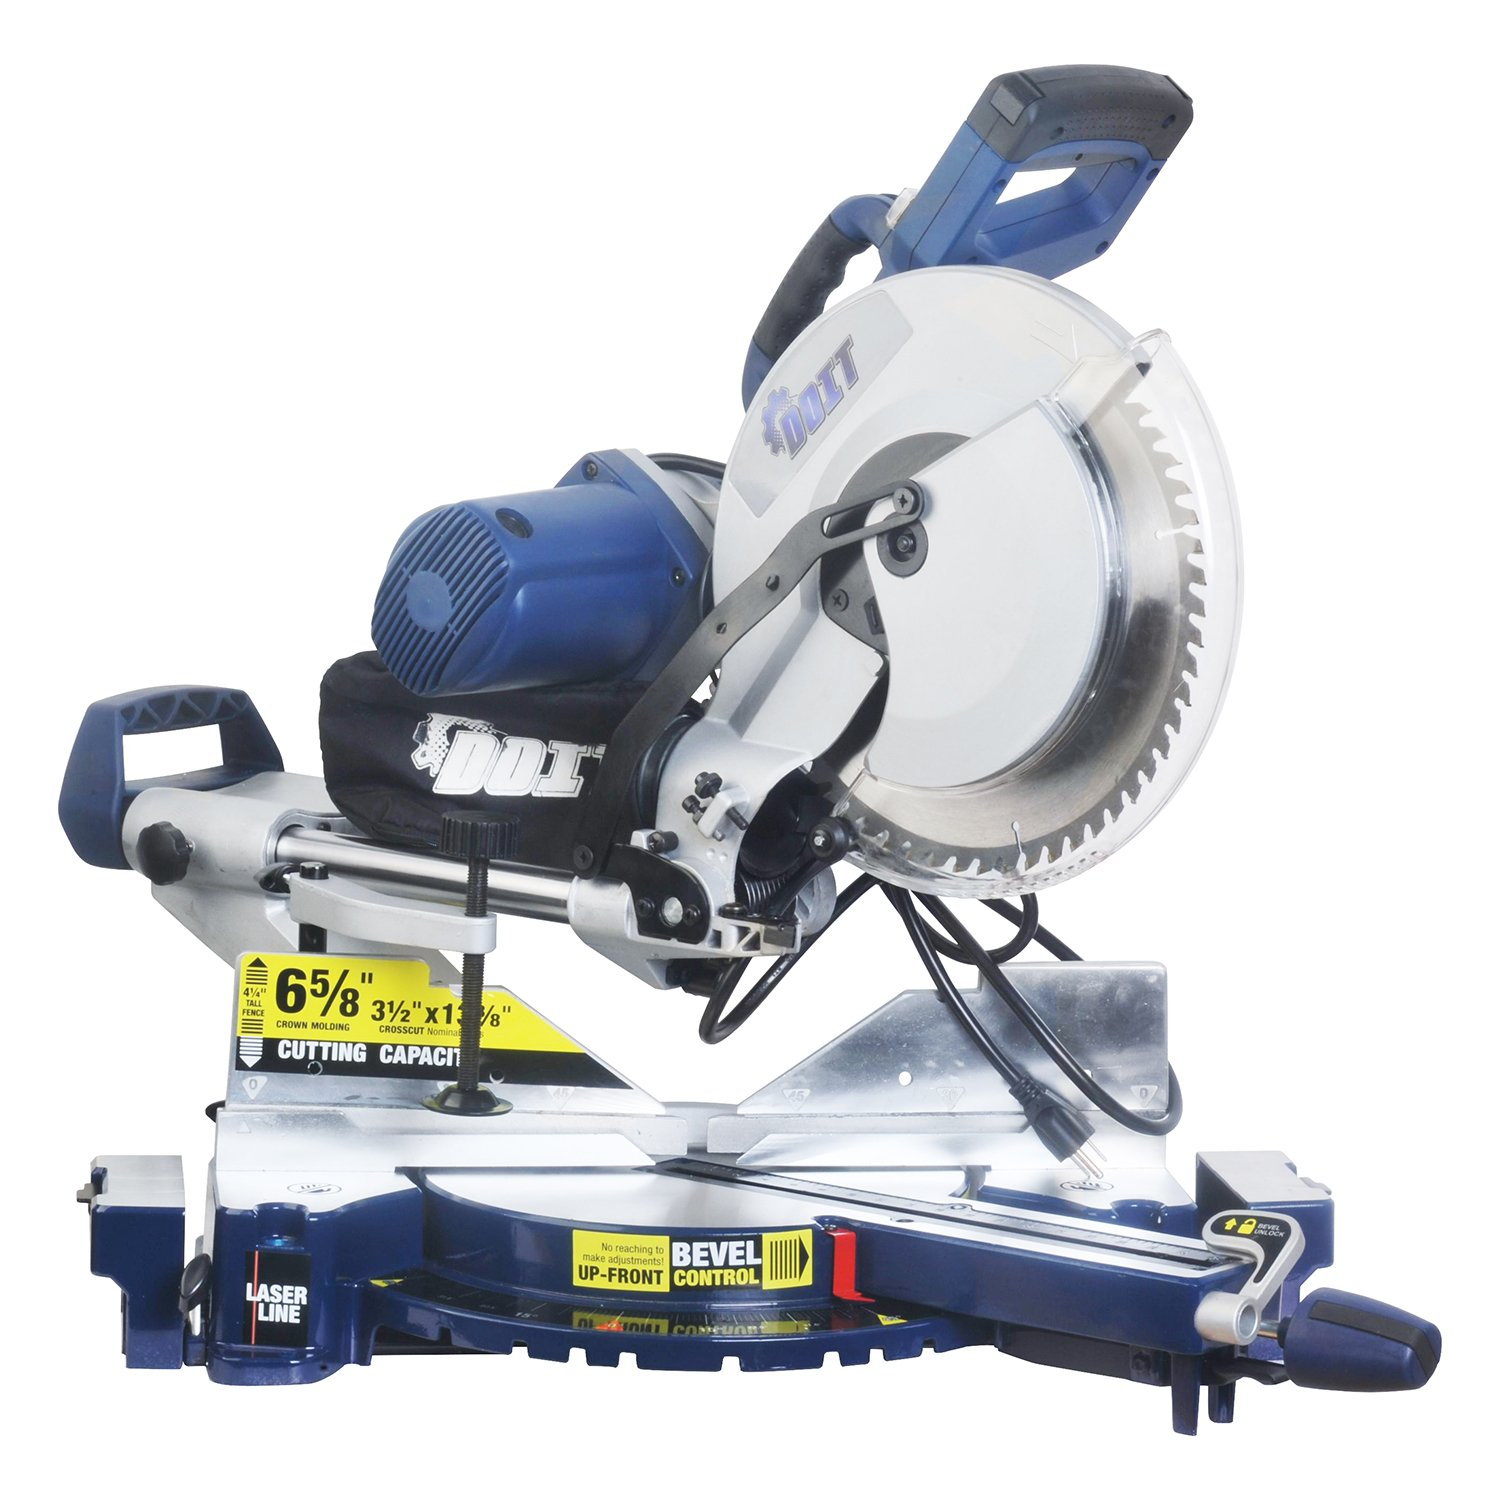 Wonlink 15 Amp 12'' Dual Bevel Sliding Compound Miter Saw with Laser and LED Work Light by Wonlink (Image #1)